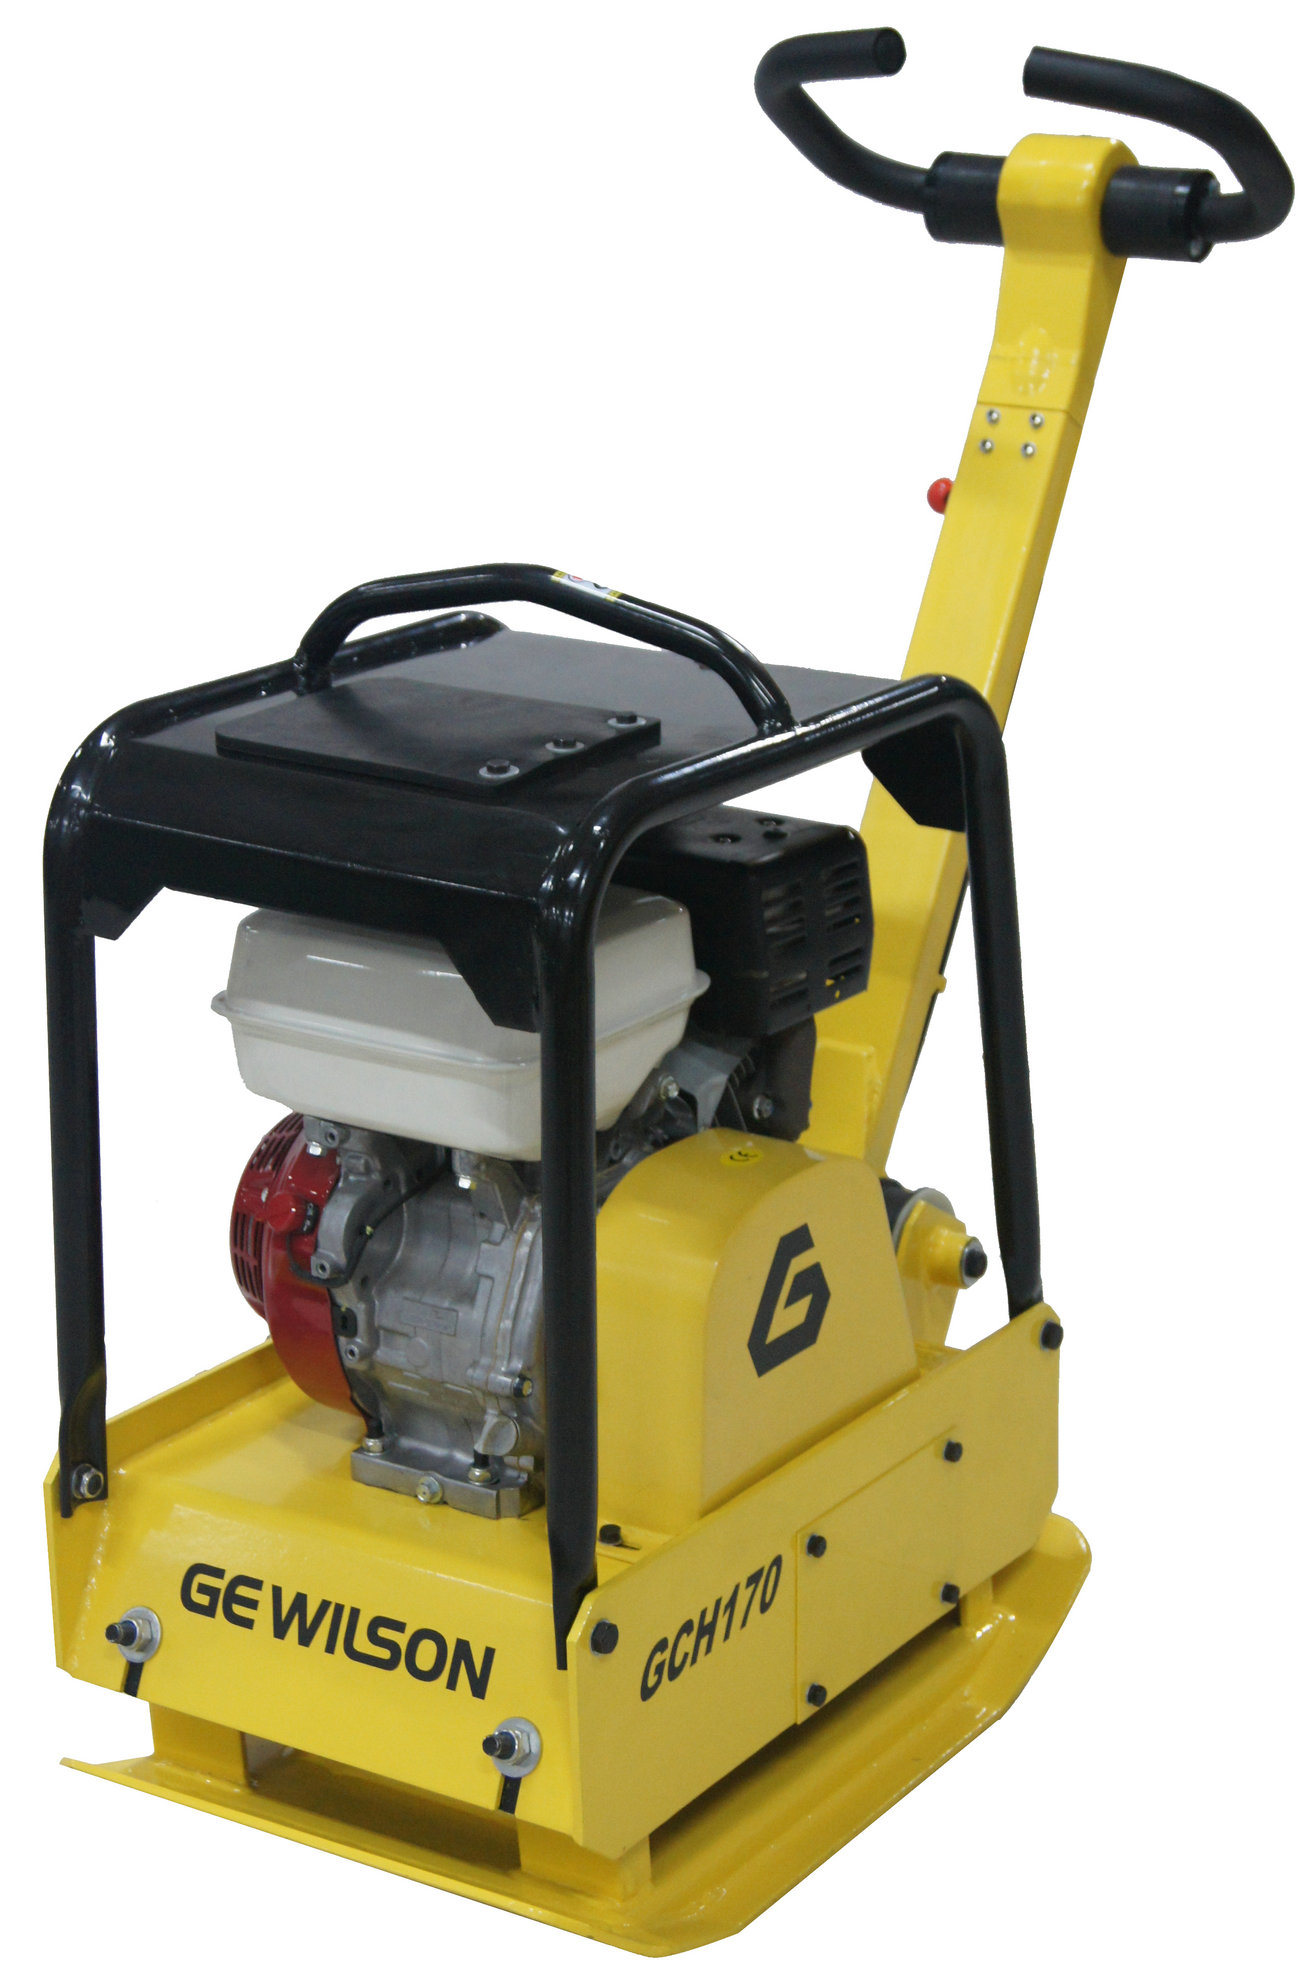 Hydraulic Reversible Plate Compactor with Robin Ey20 Engine